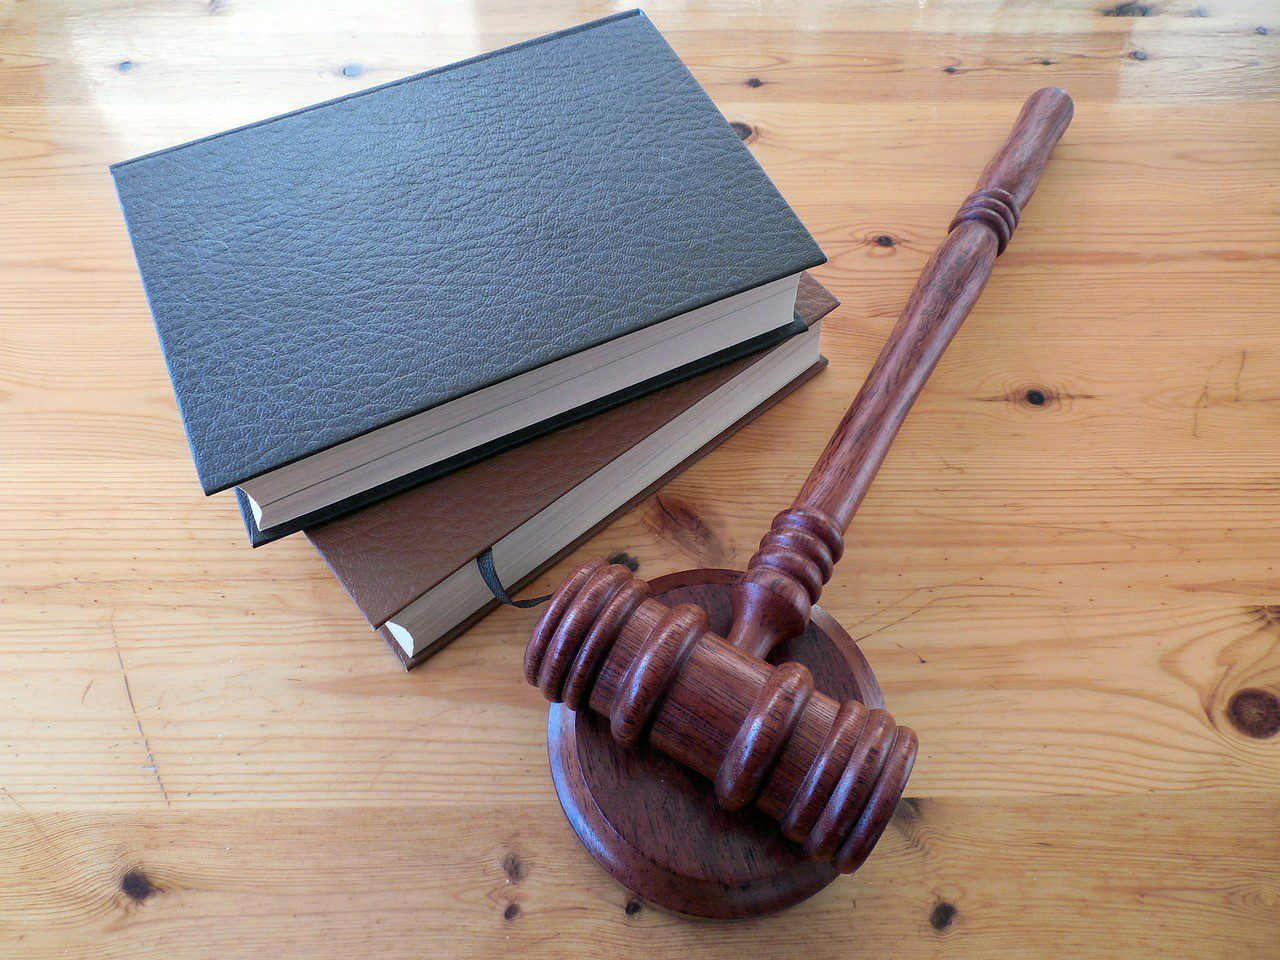 Two books and a gavel on a wooden table